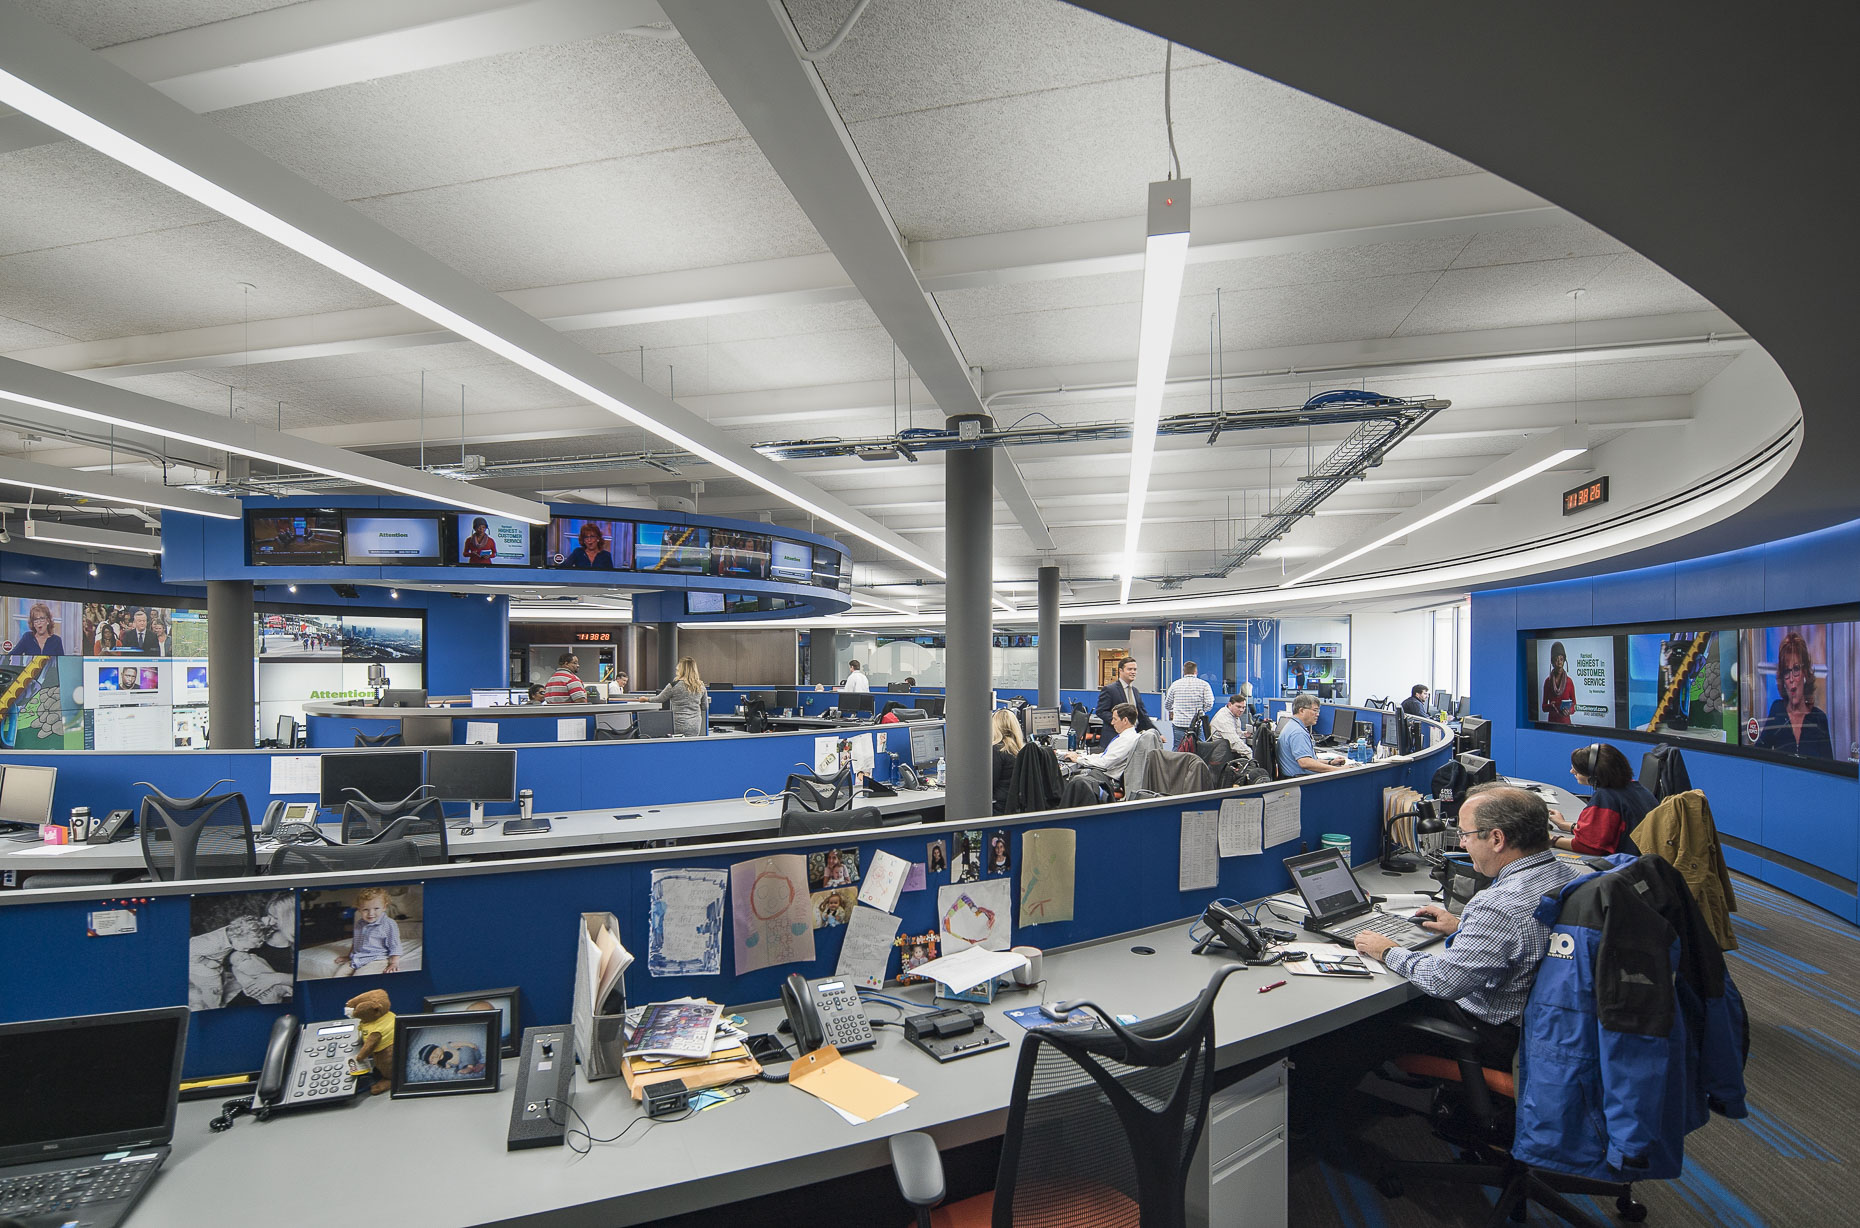 Channel 10 Newsroom by Turner Construction photographed by Lauren K Davis based in Columbus, Ohio